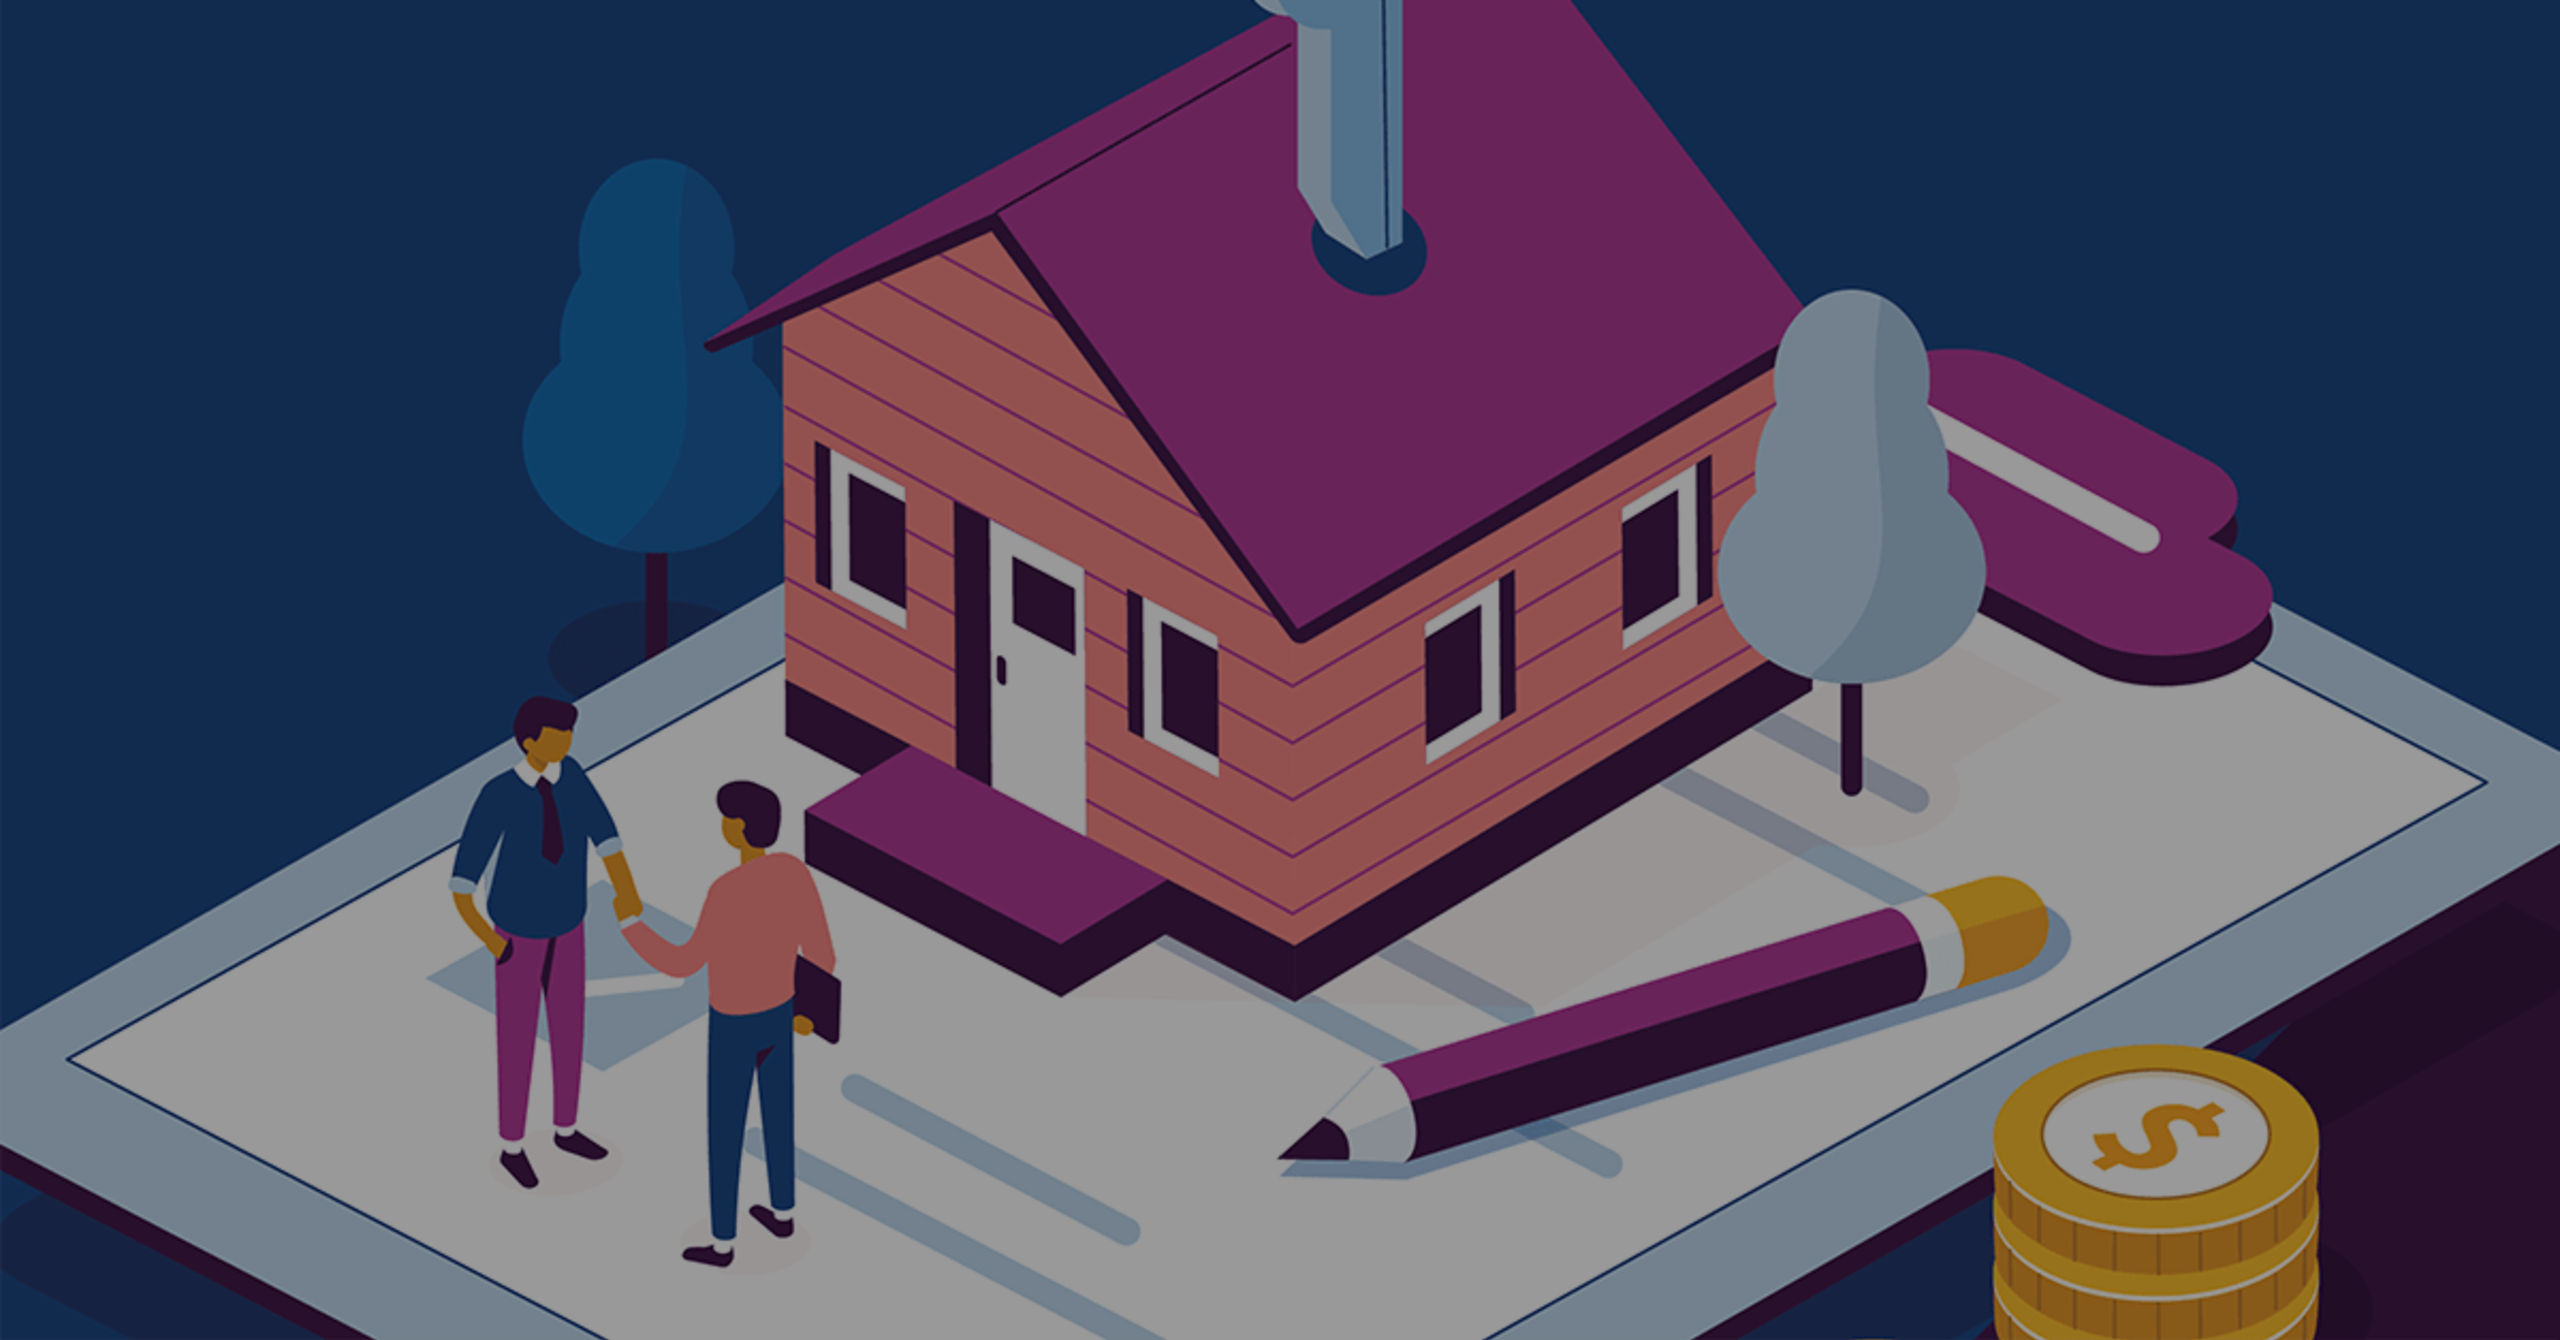 NEW RESOURCES FOR HOMEOWNERS FACING FINANCIAL HARDSHIP